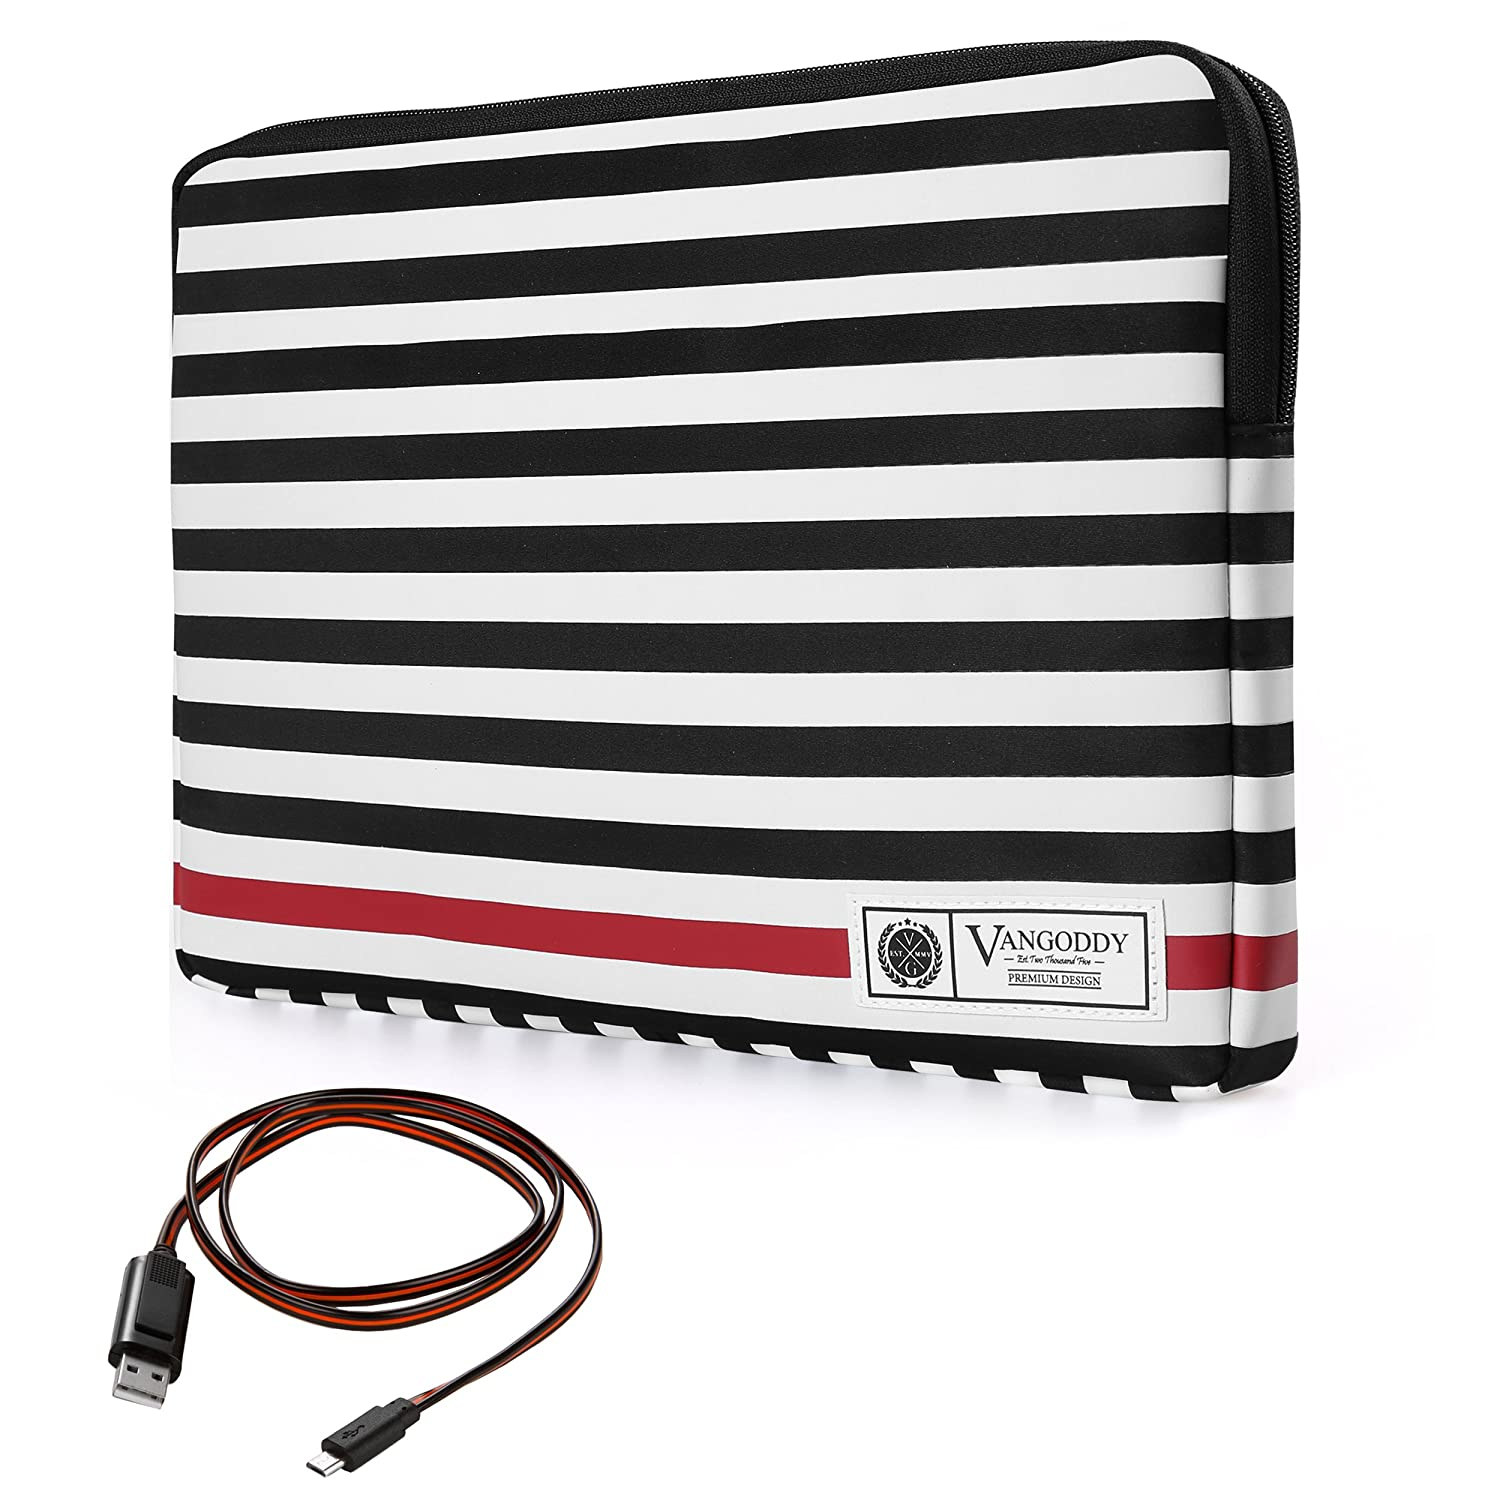 Luxe B Series Classic Black White Stripe Padded Sleeve for Dell Chromebook 13 Latitude 13 Vostro 14 Inspiron 13 14 15 Series 13.3 inch 14 inch Tablet Laptop with Wireless Mouse and Headphone